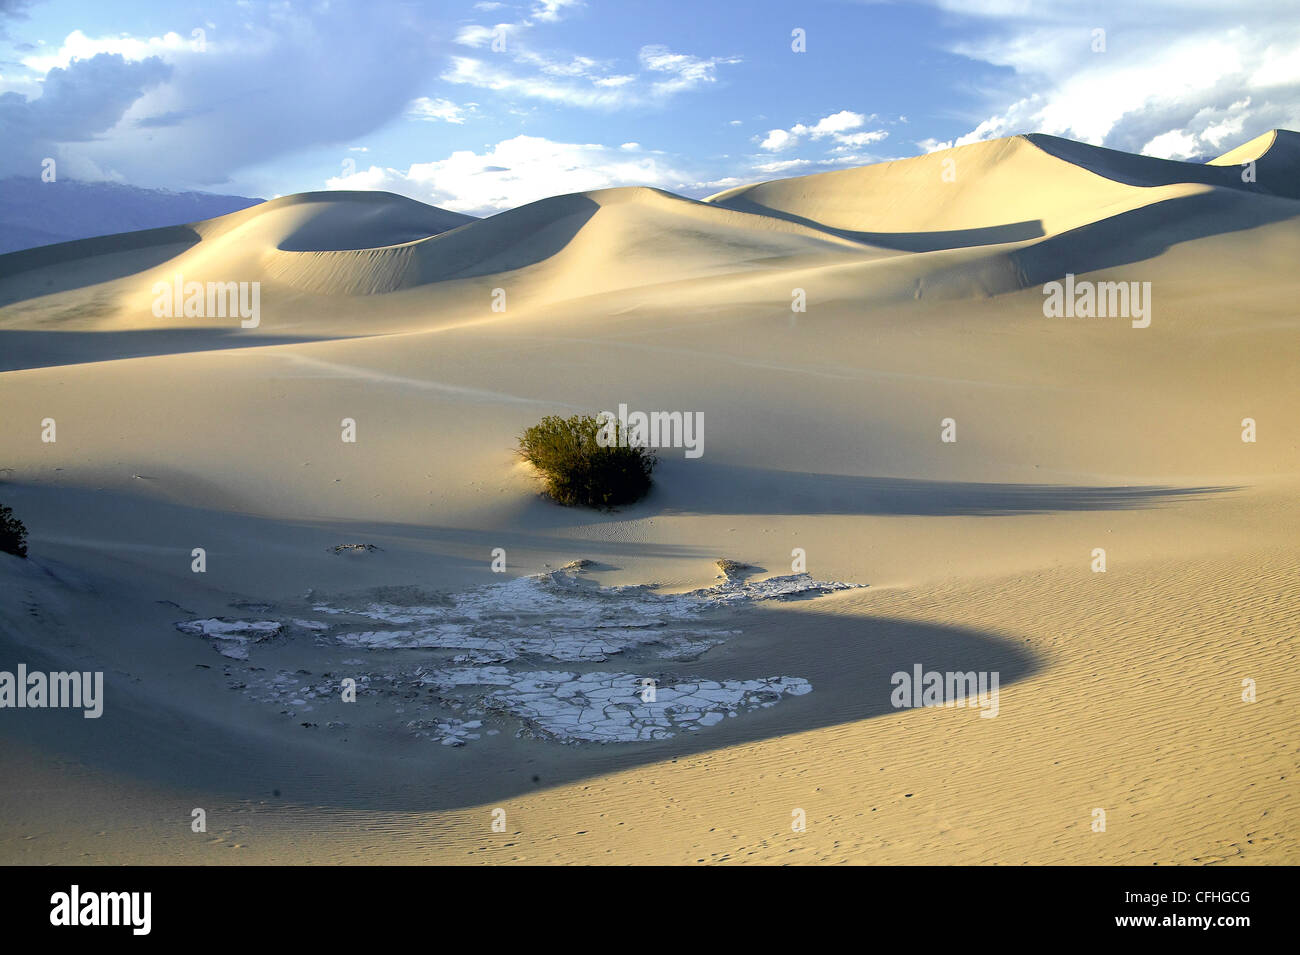 Sand dunes at Death Valley, near Stovepipe Wells, CA, at sunset - Stock Image